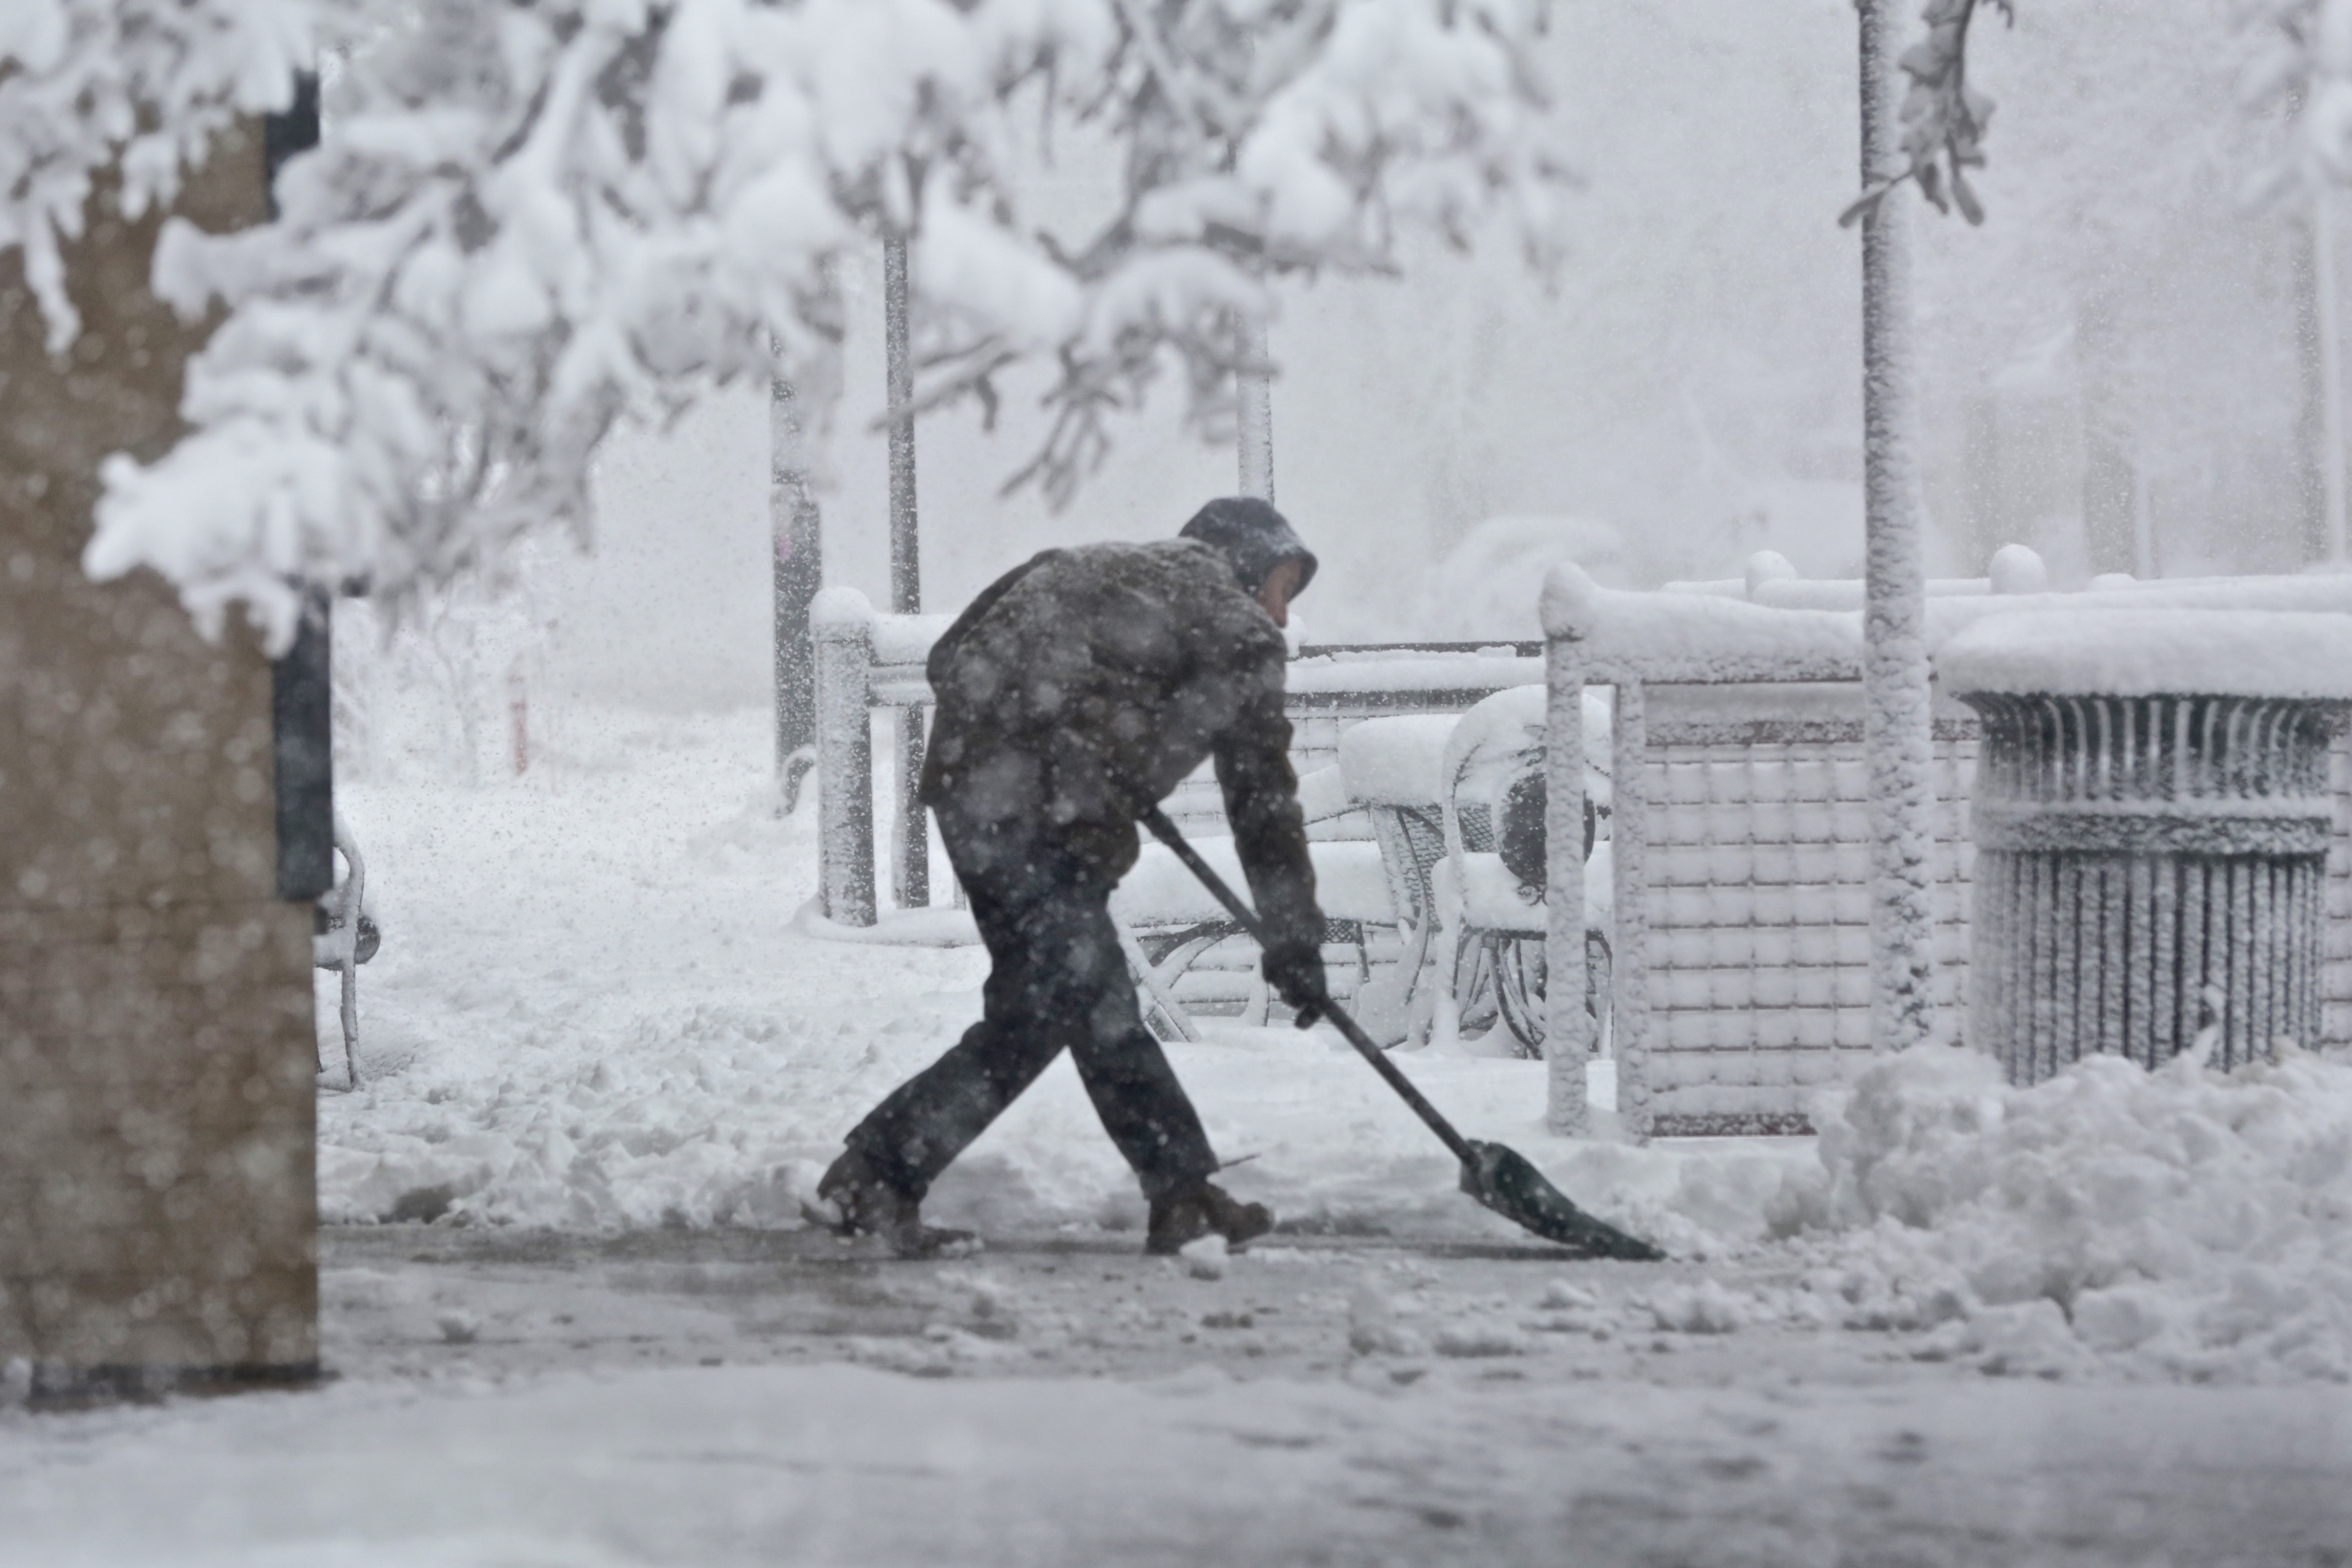 <p>Shoveling snow on 23rd Avenue in Denver on Wednesday, March 23, 2016.</p>